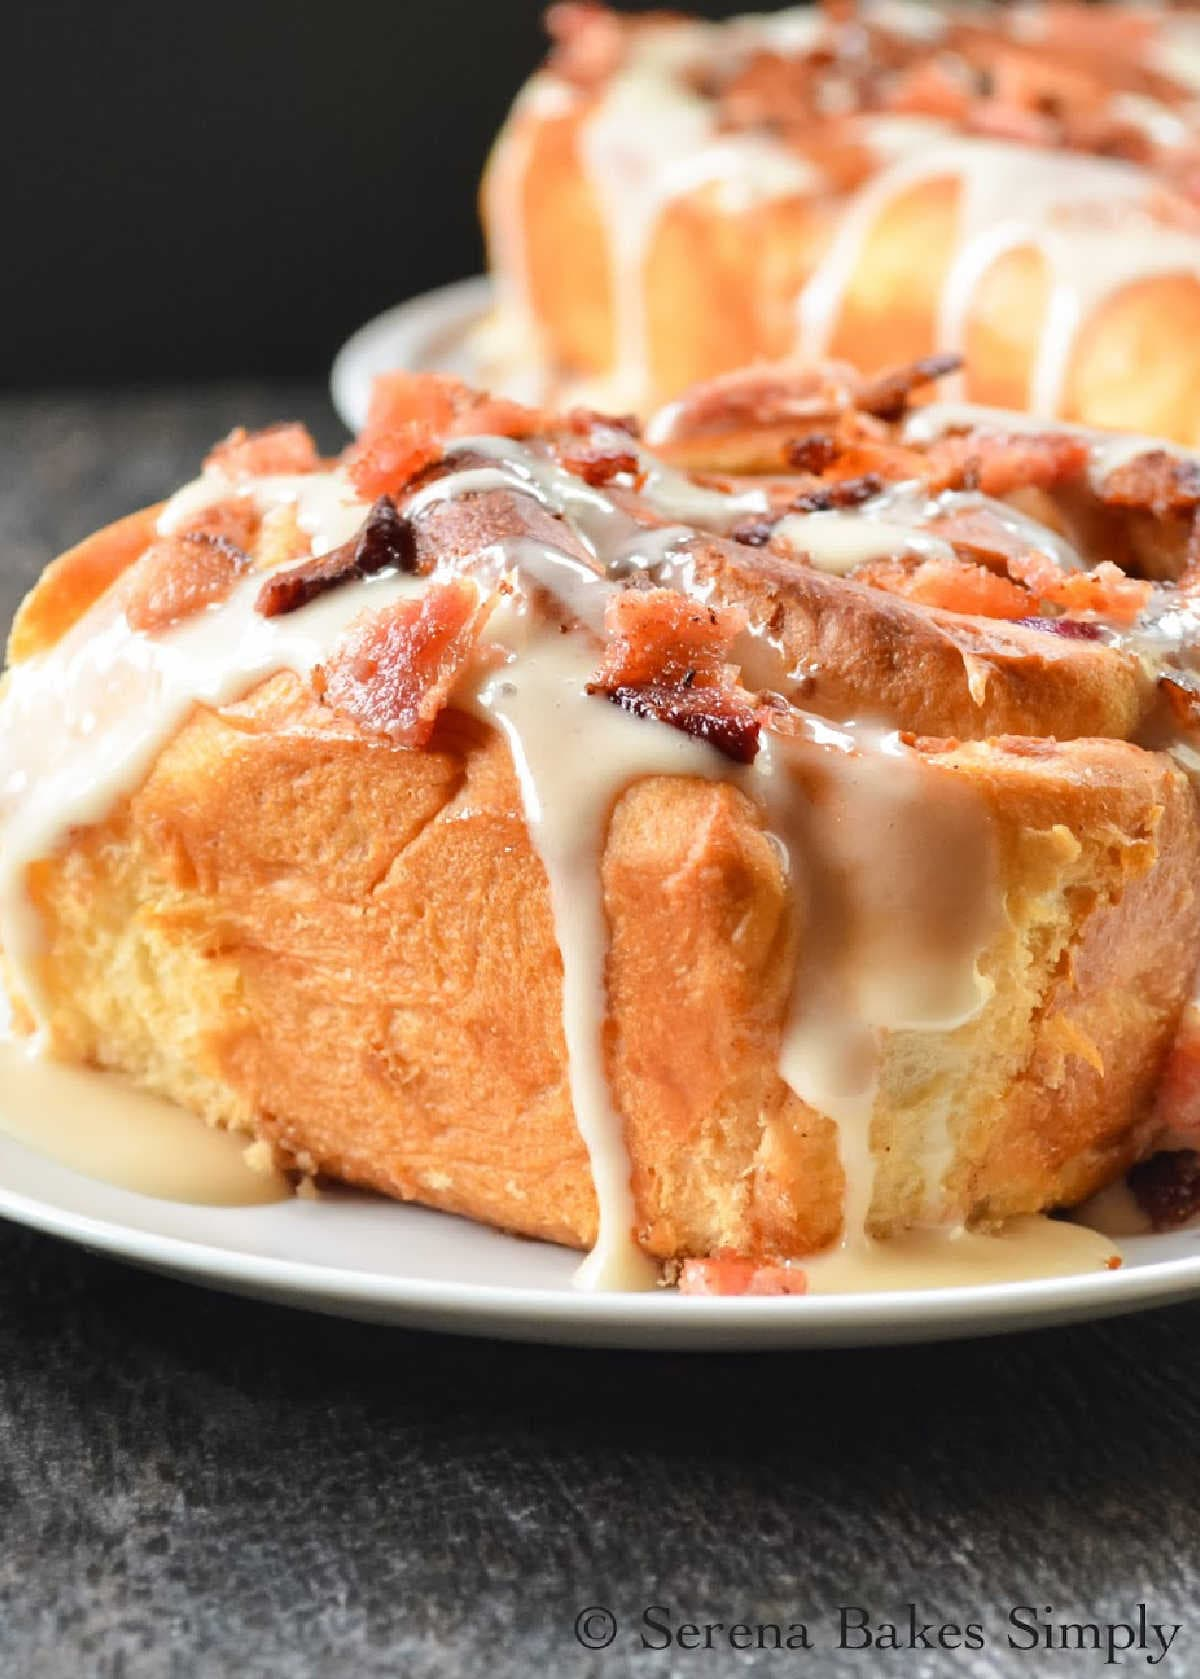 Blueberry Bacon Cinnamon Rolls topped with bacon crumbles on a white plate.